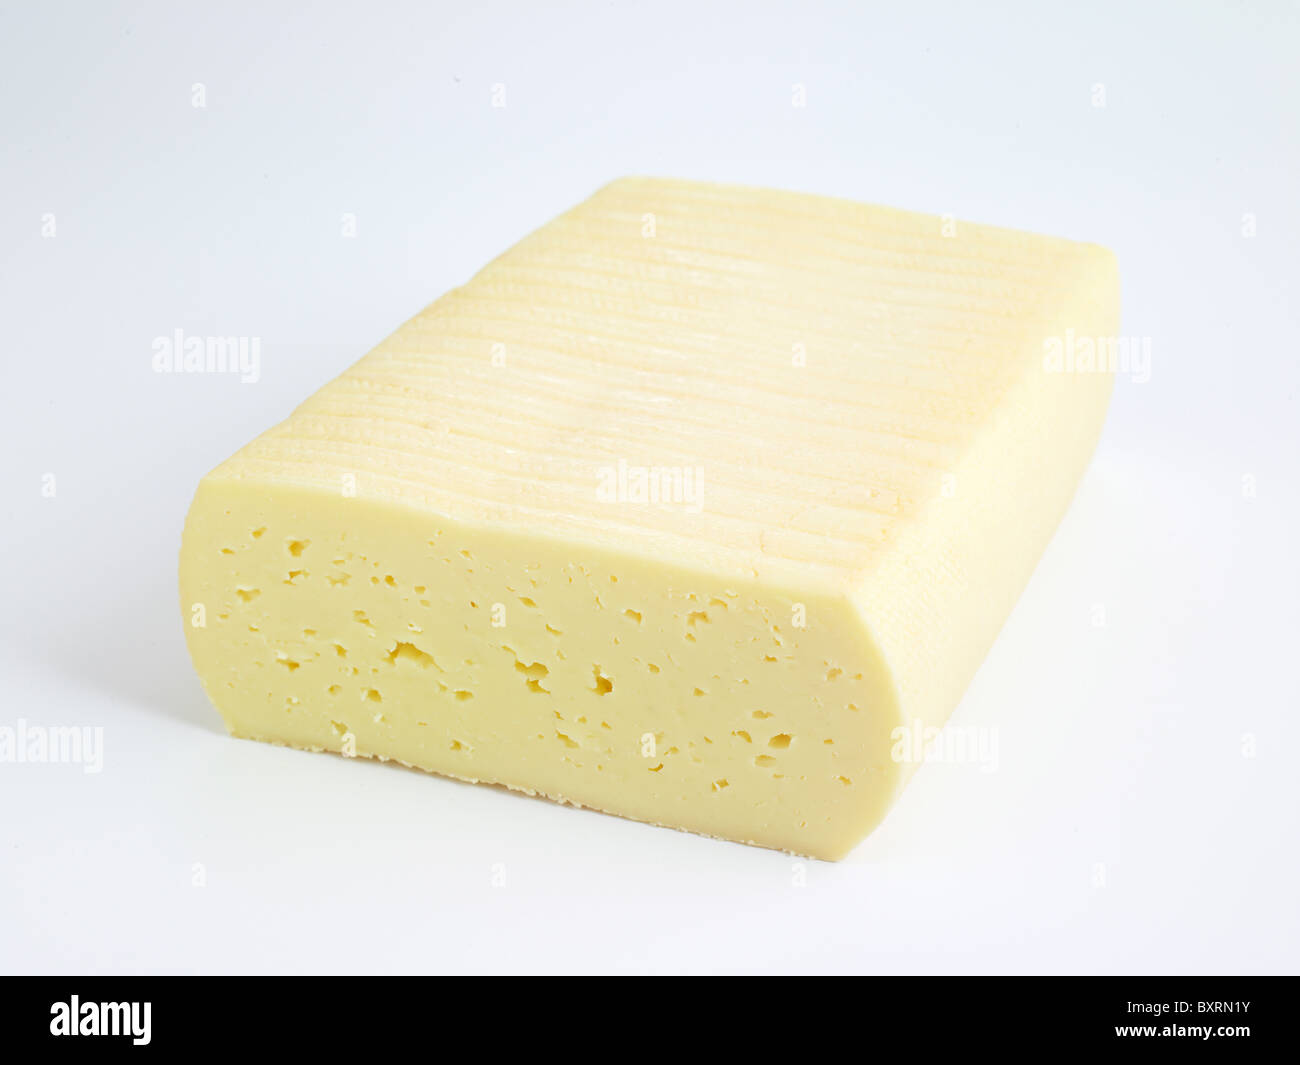 Esrom danois contre fromage fond blanc Photo Stock